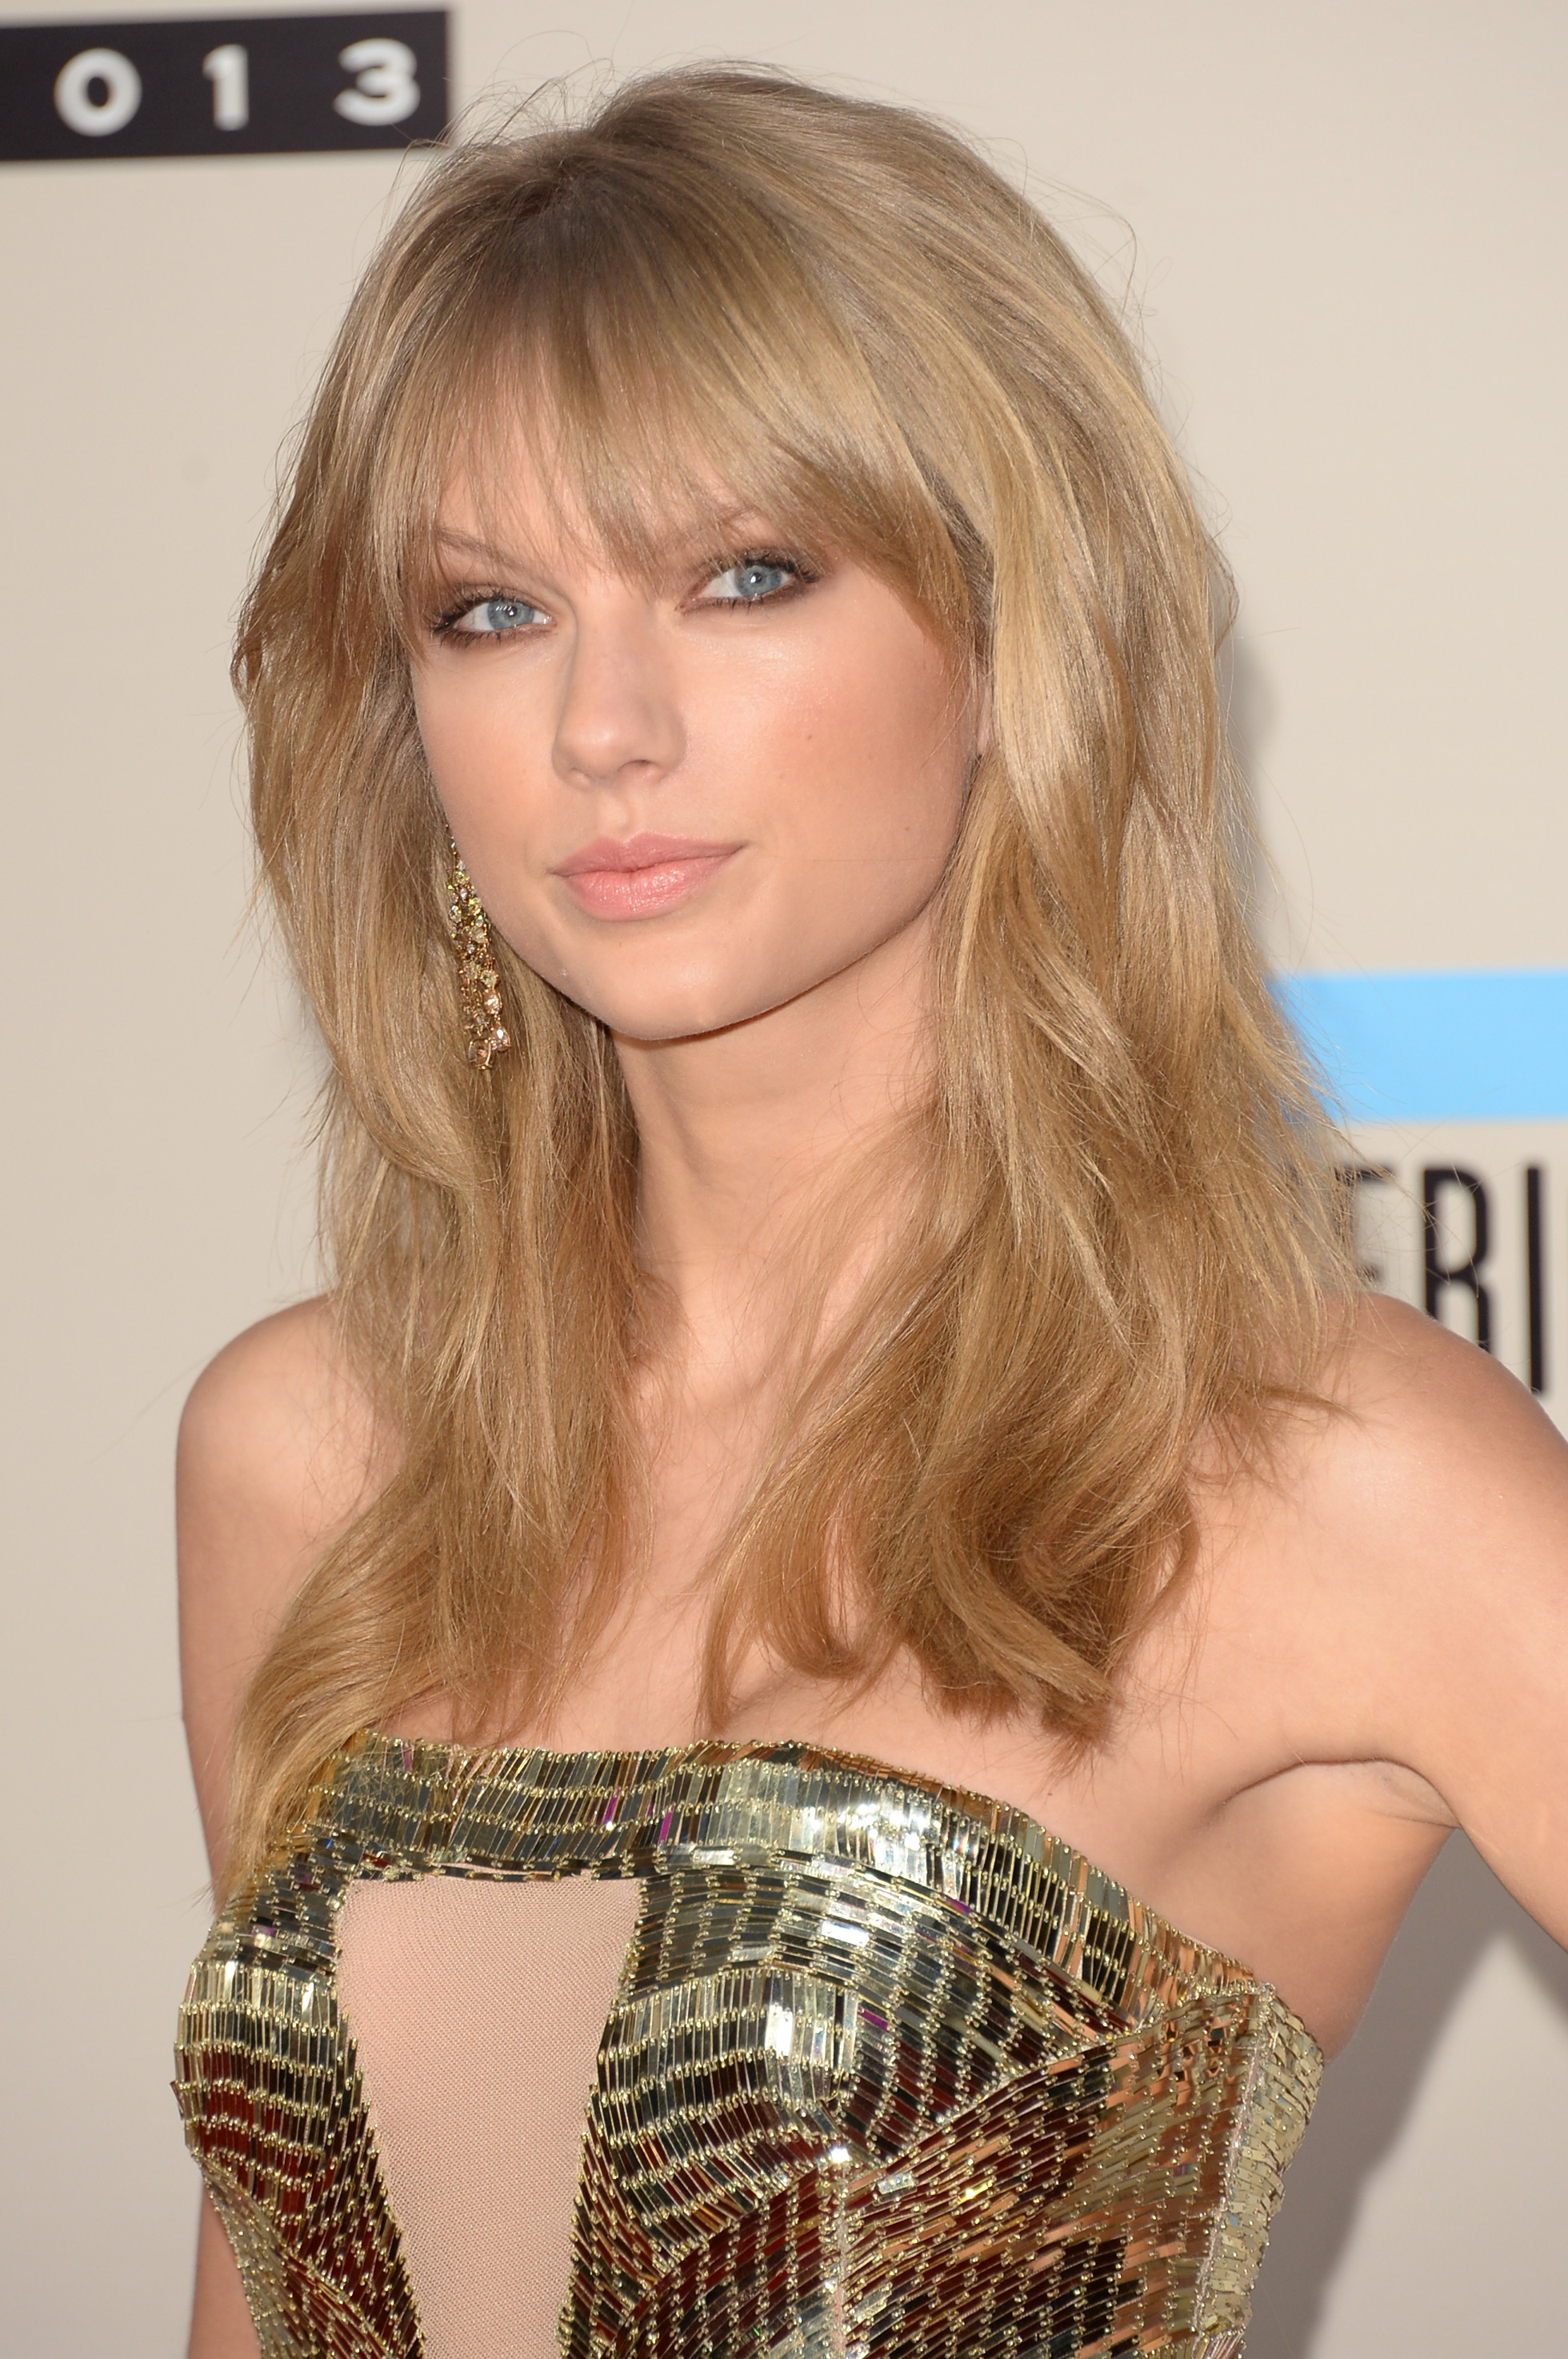 http://taylorpictures.net/albums/app/2013/americanmusicawards/027.jpg